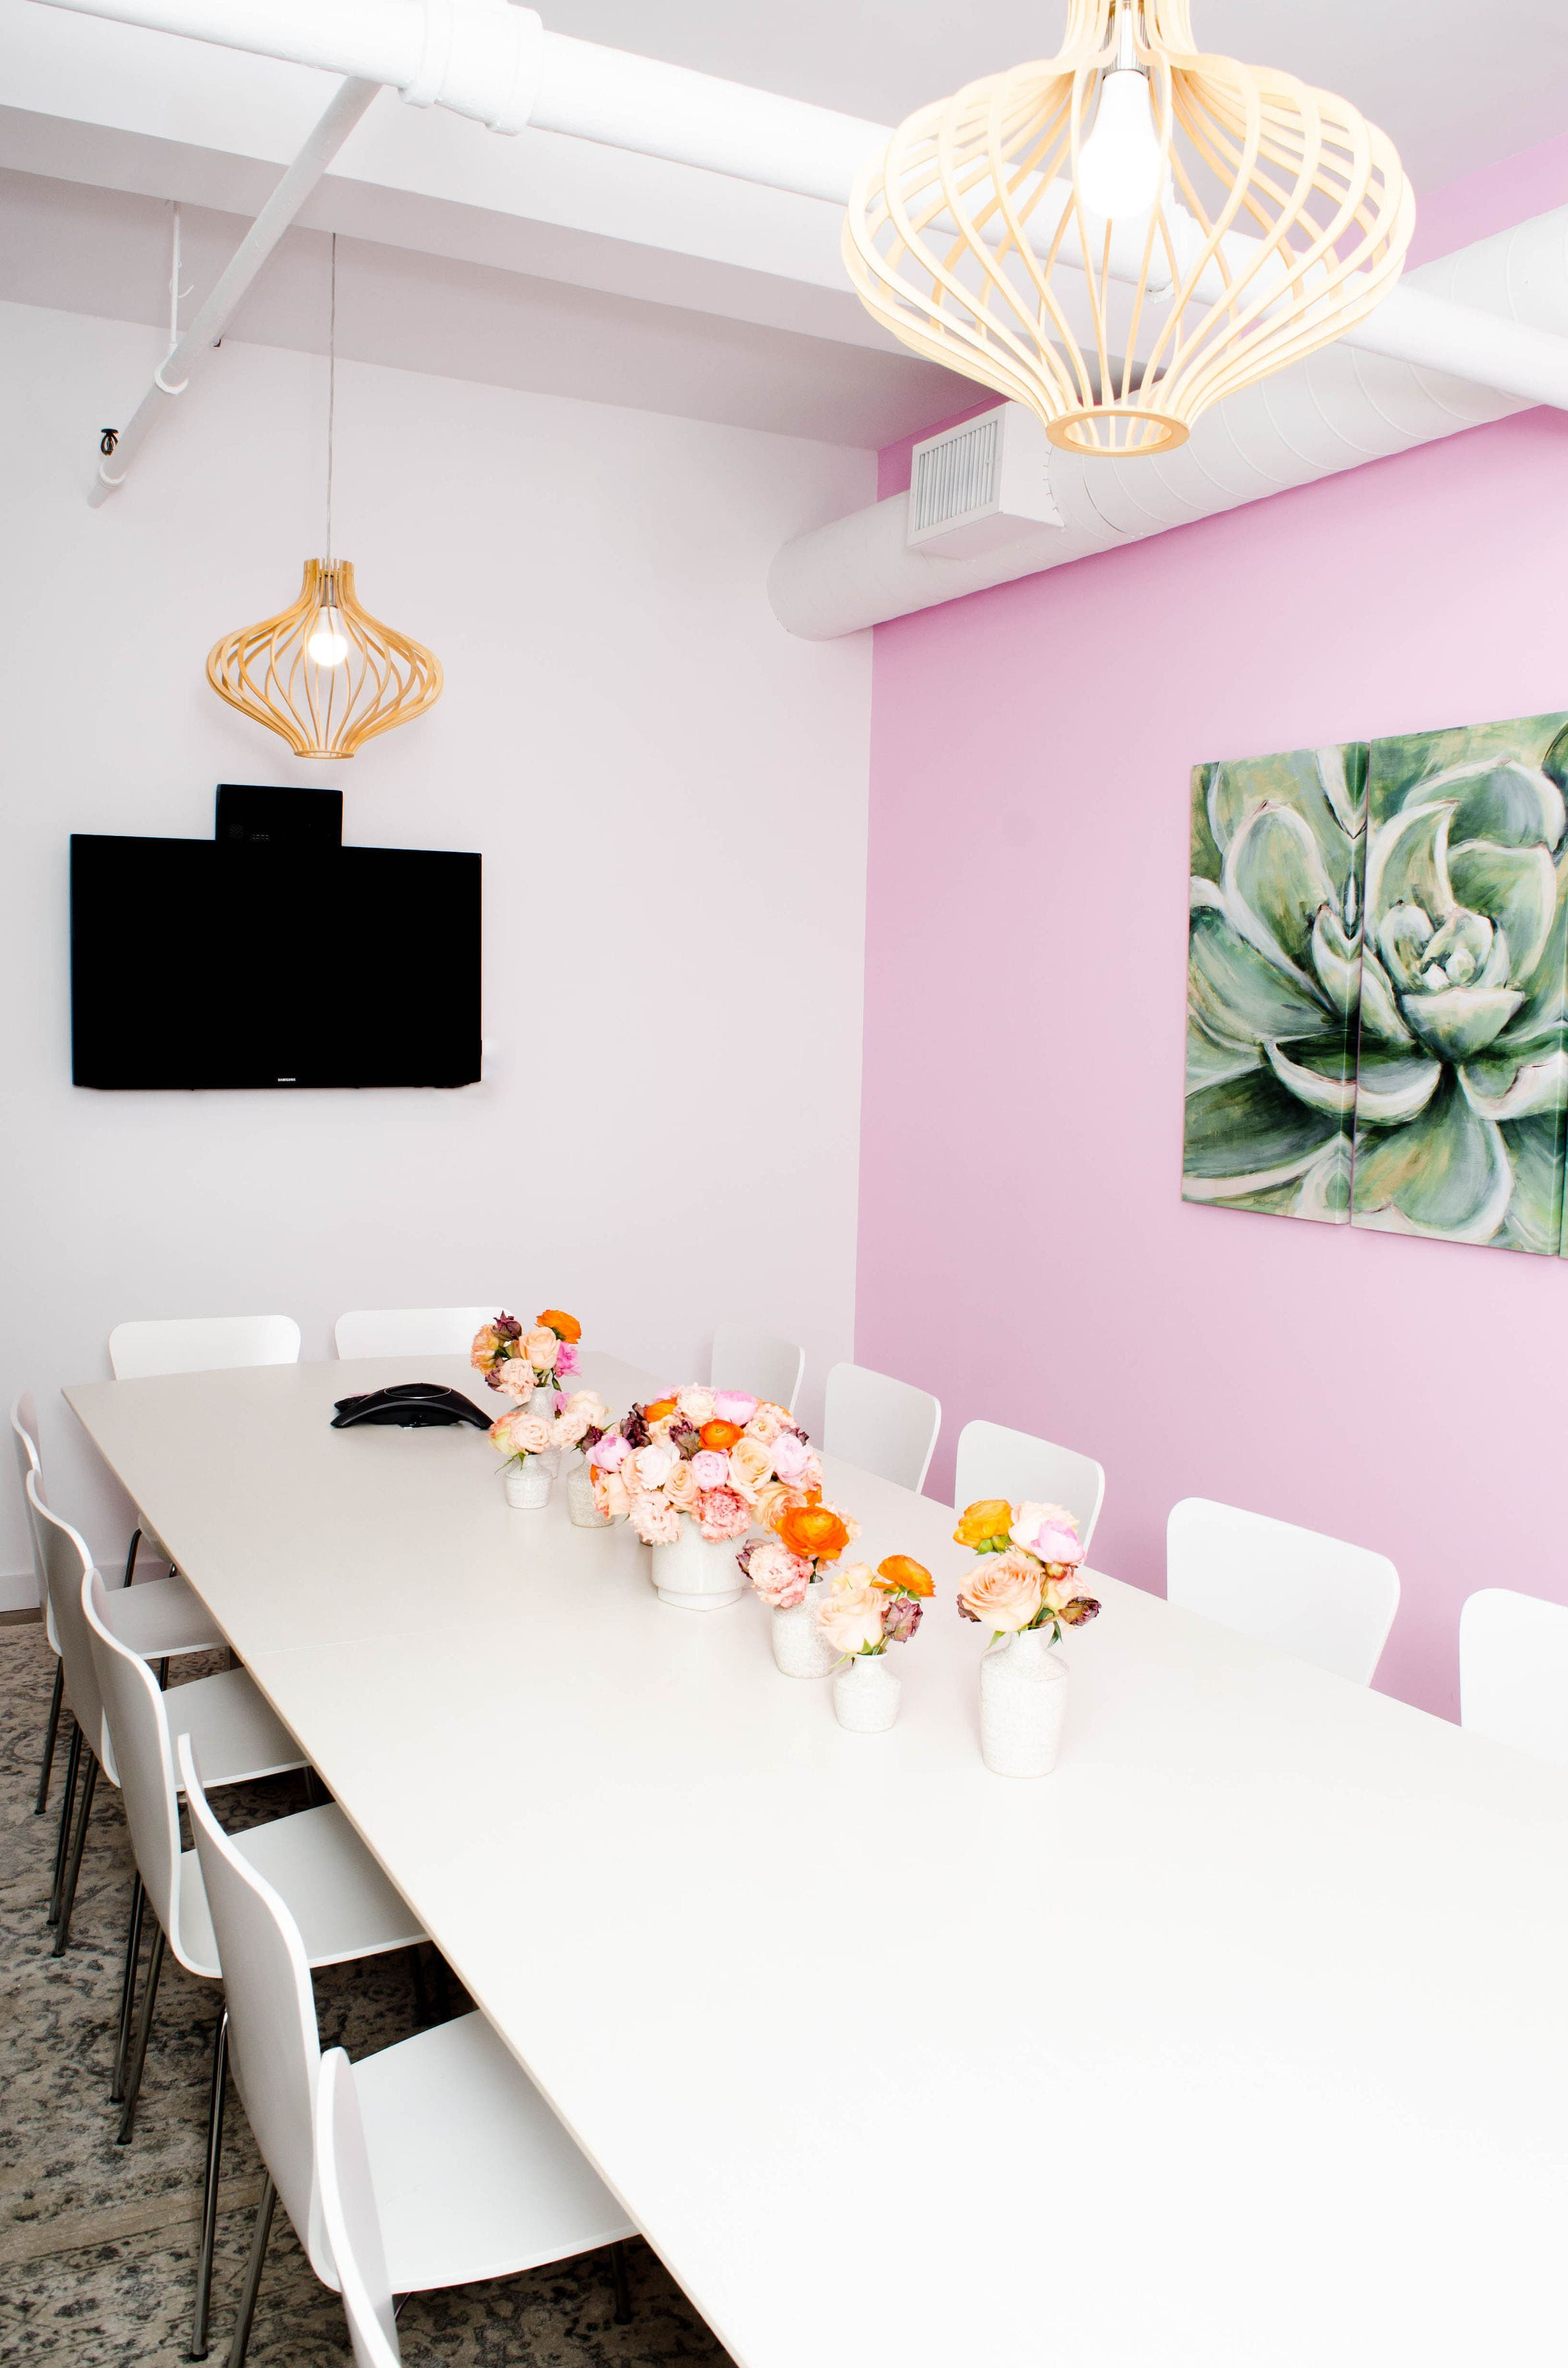 NEW - OFFICE - SPACE - MANHATTAN - COOL - OPEN - CONFERENCE ROOM - SUCCULENT - B FLORAL